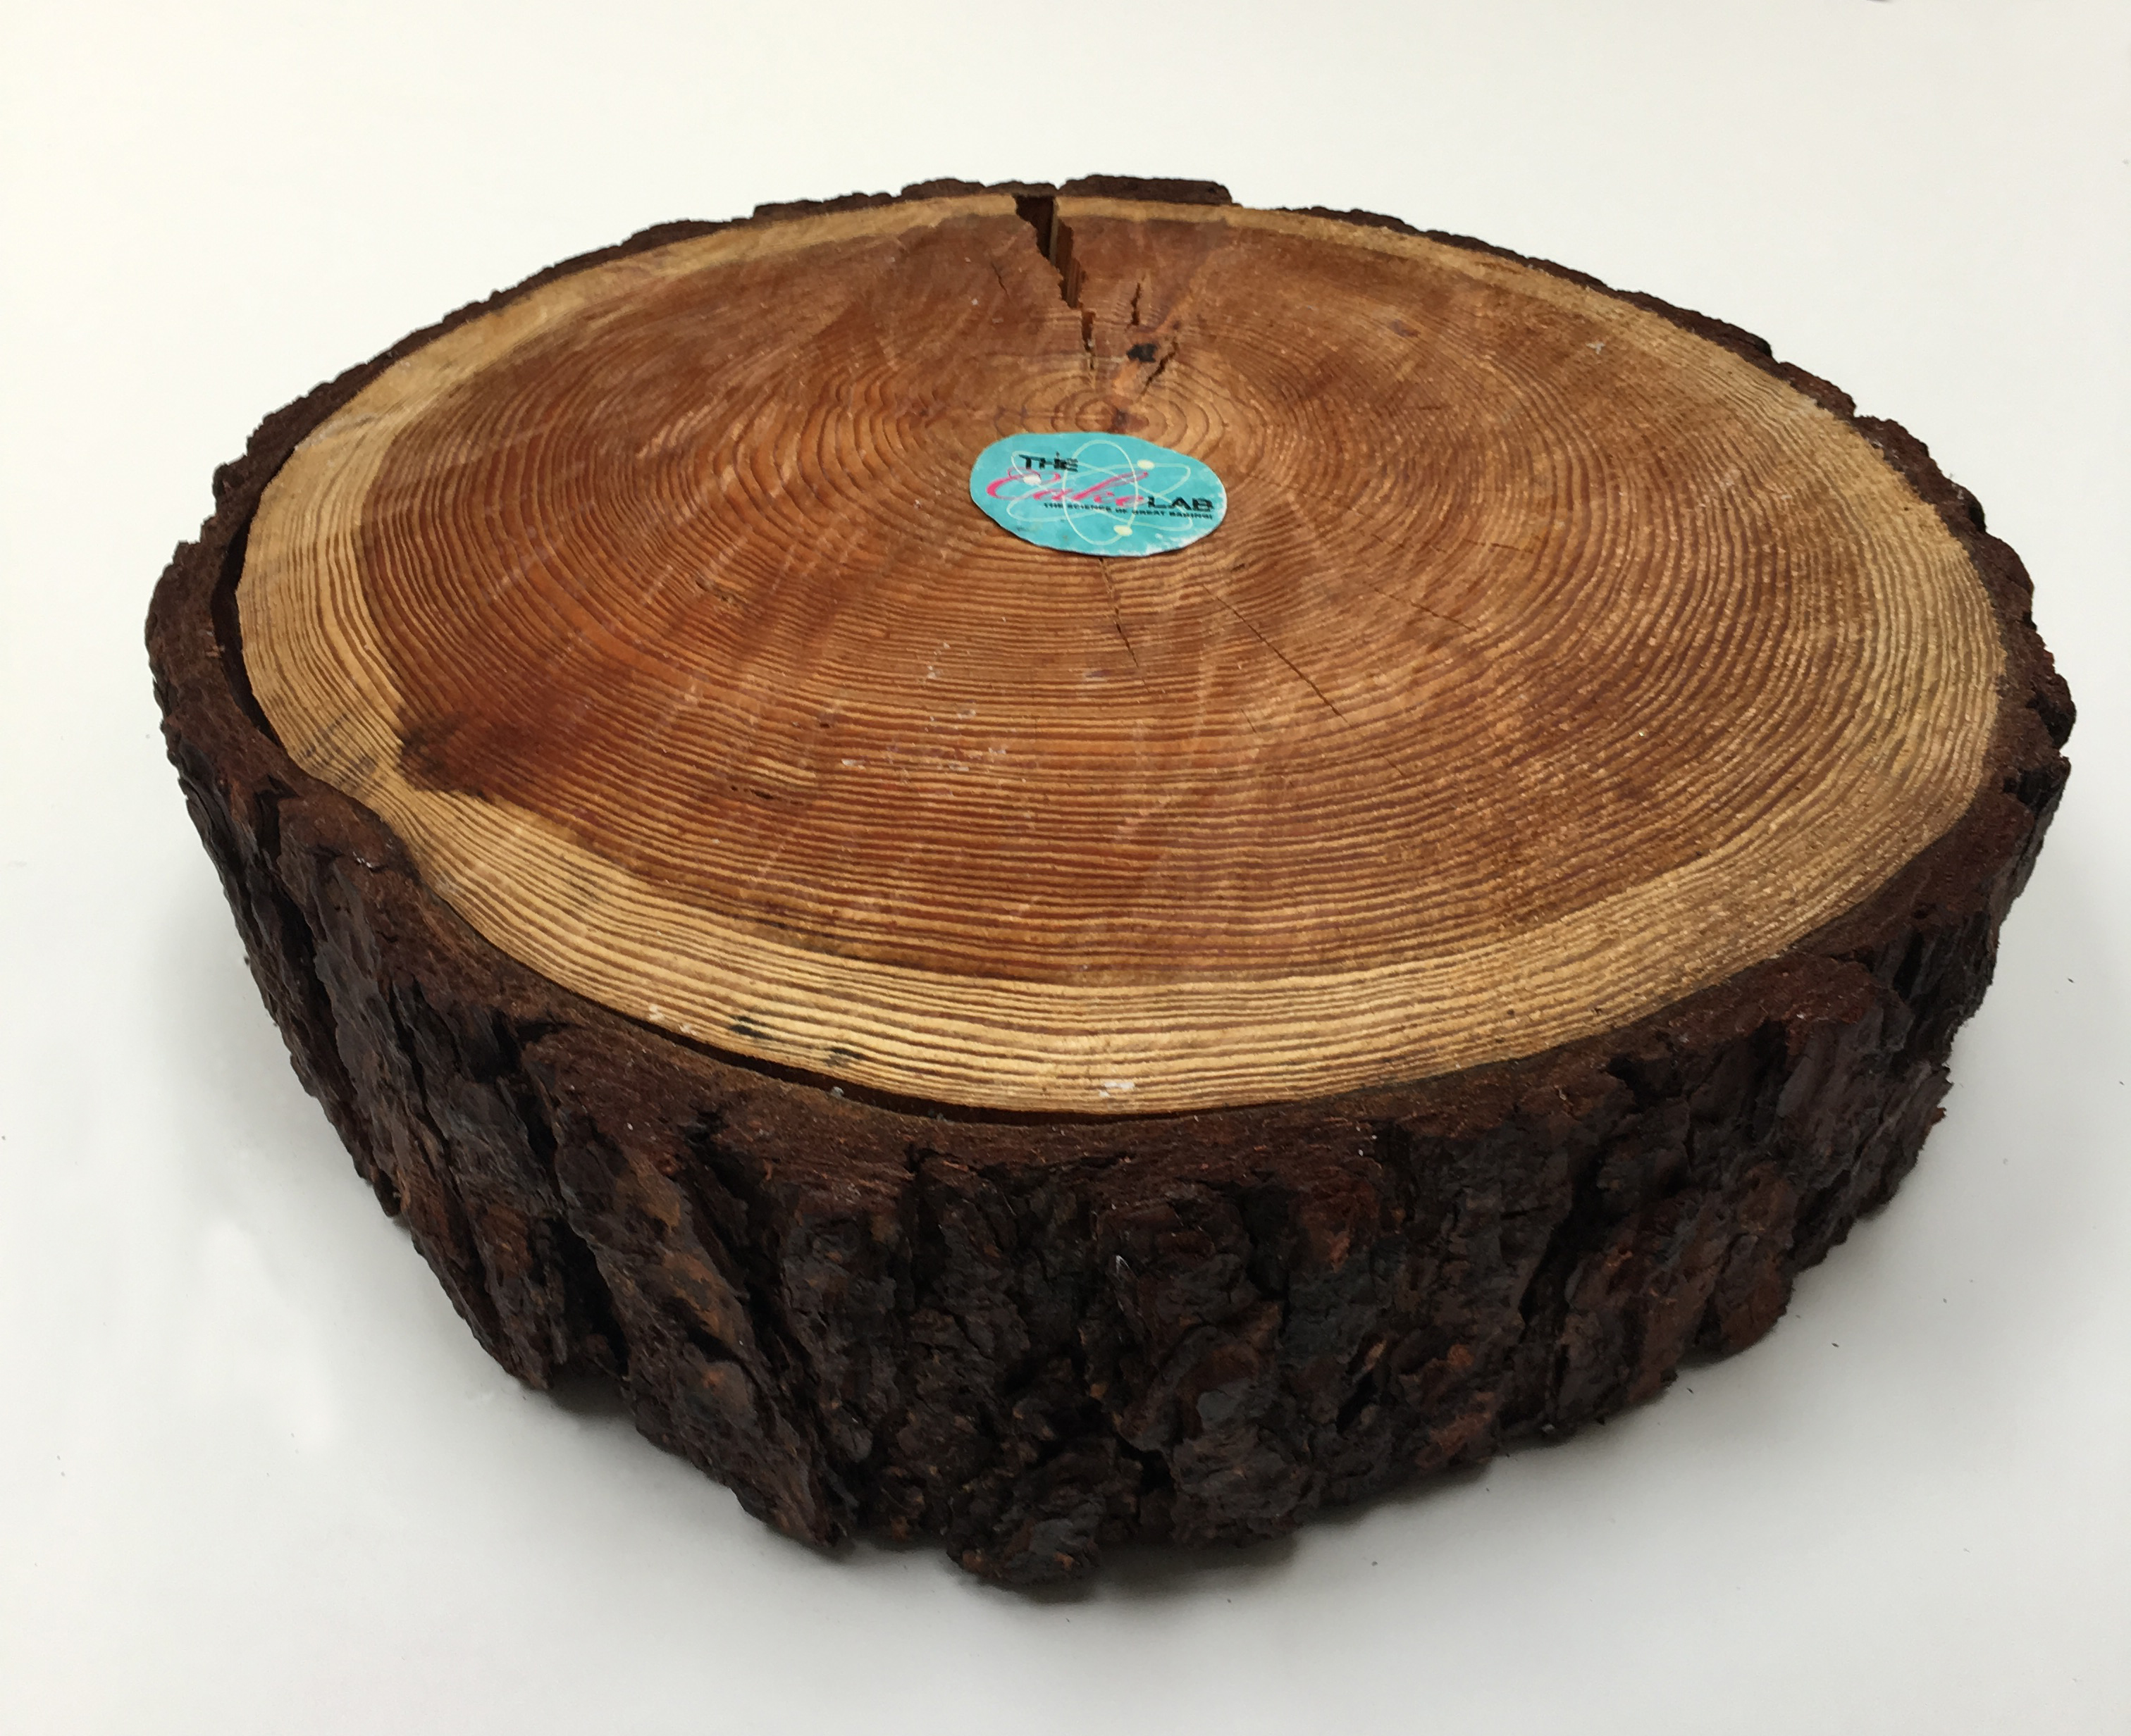 Large Real Wood Cake Stand for hire.